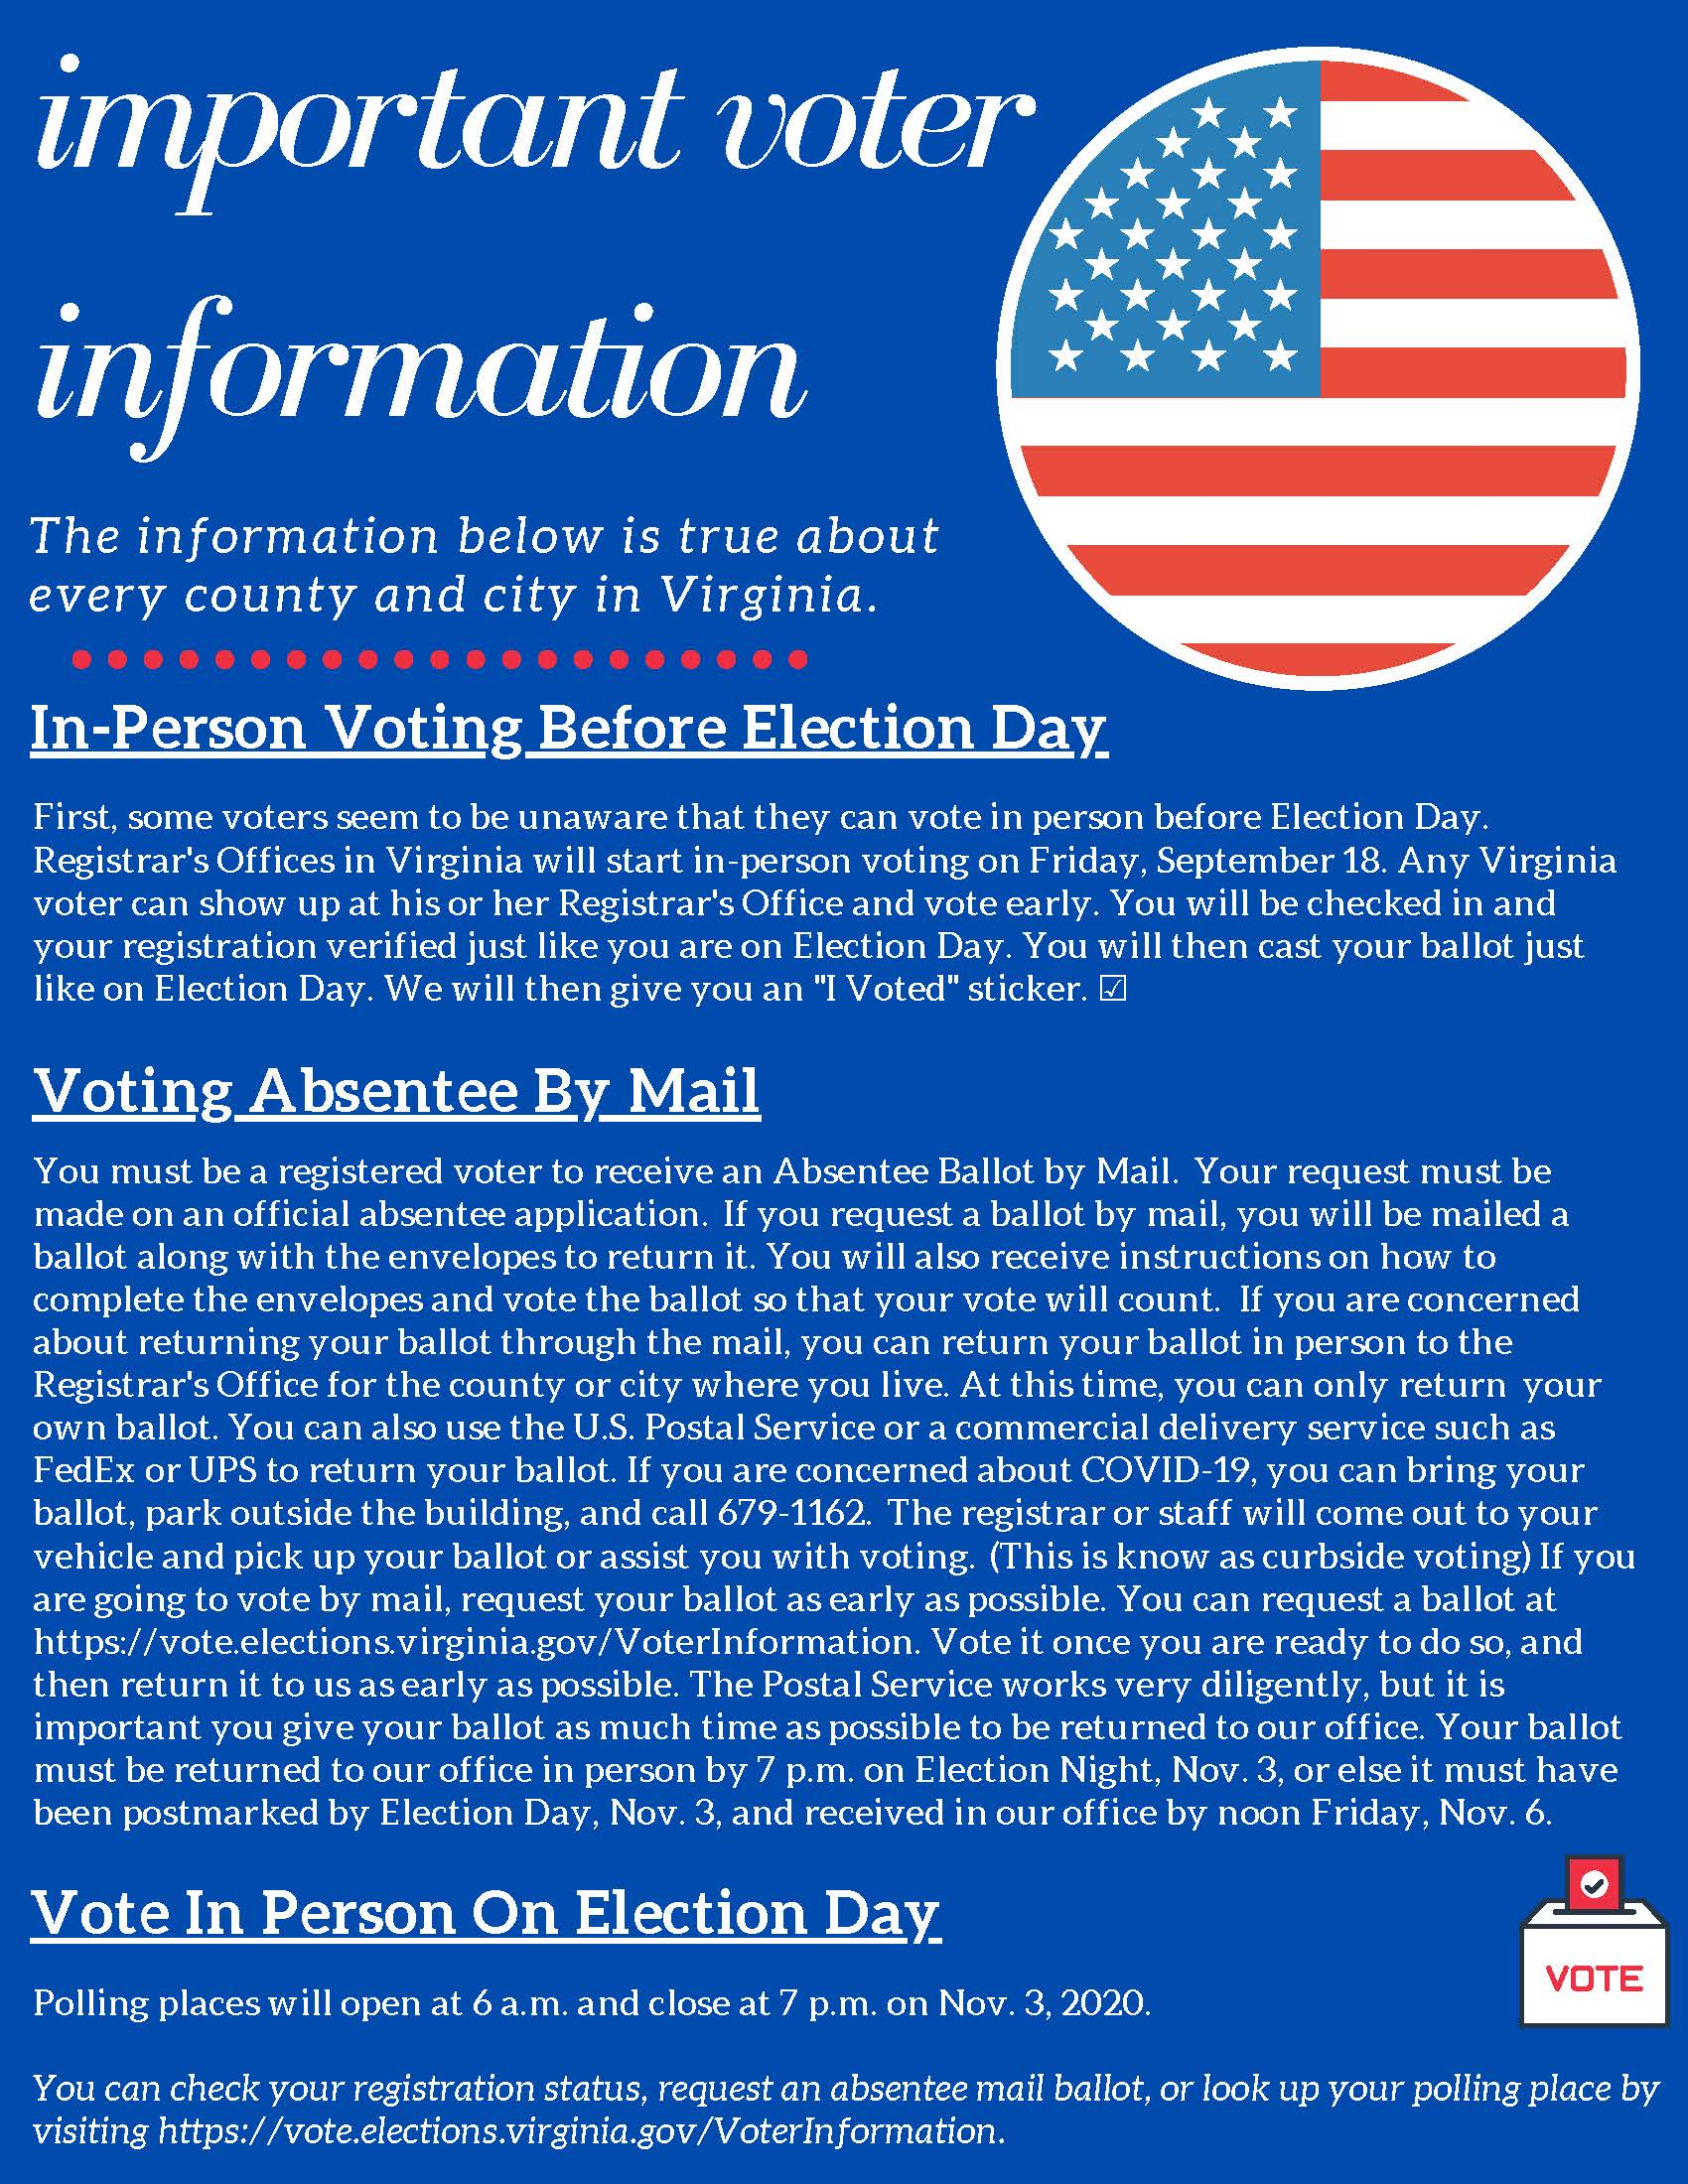 voter information flyer